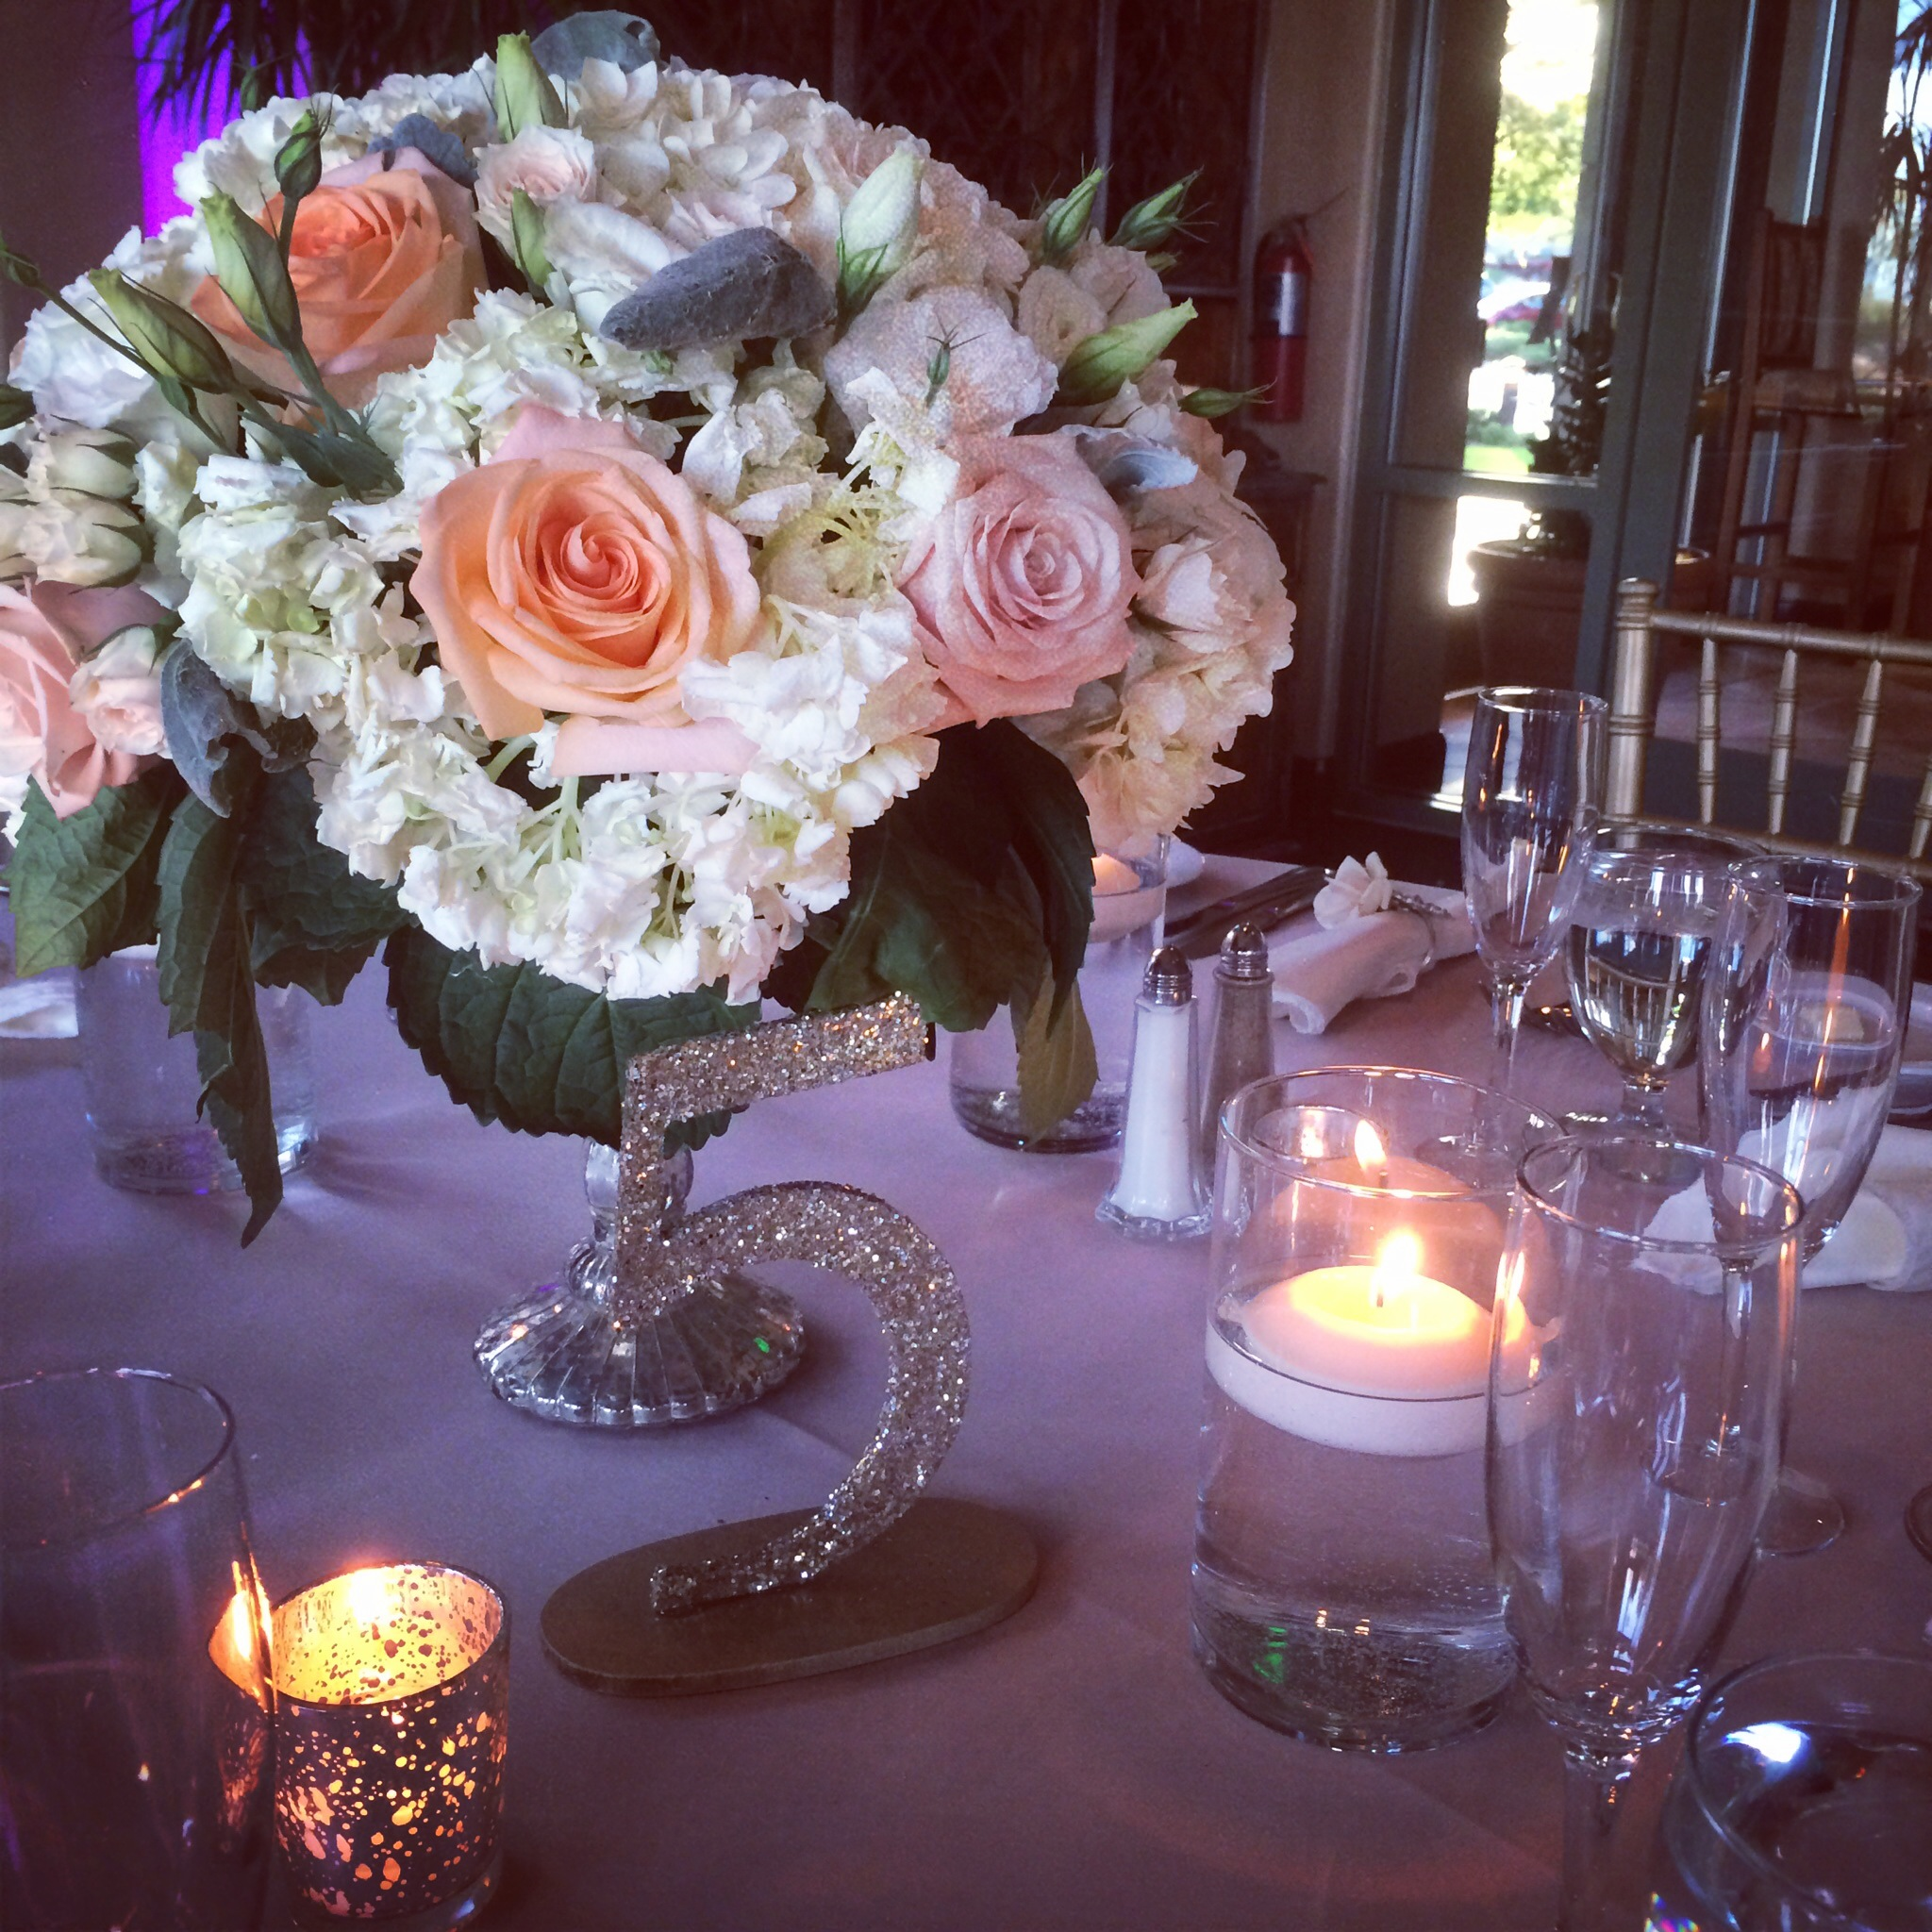 Tablescape of mocha linens, lush peach and white centerpieces, mercury glass voices, and glitter table numbers.Photo by Andrea Eppolito.  Las Vegas Wedding Planner Andrea Eppolito | Las Vegas Venue: Siena Golf Course |Floral & Decor: Naakiti Floral and Sit On This